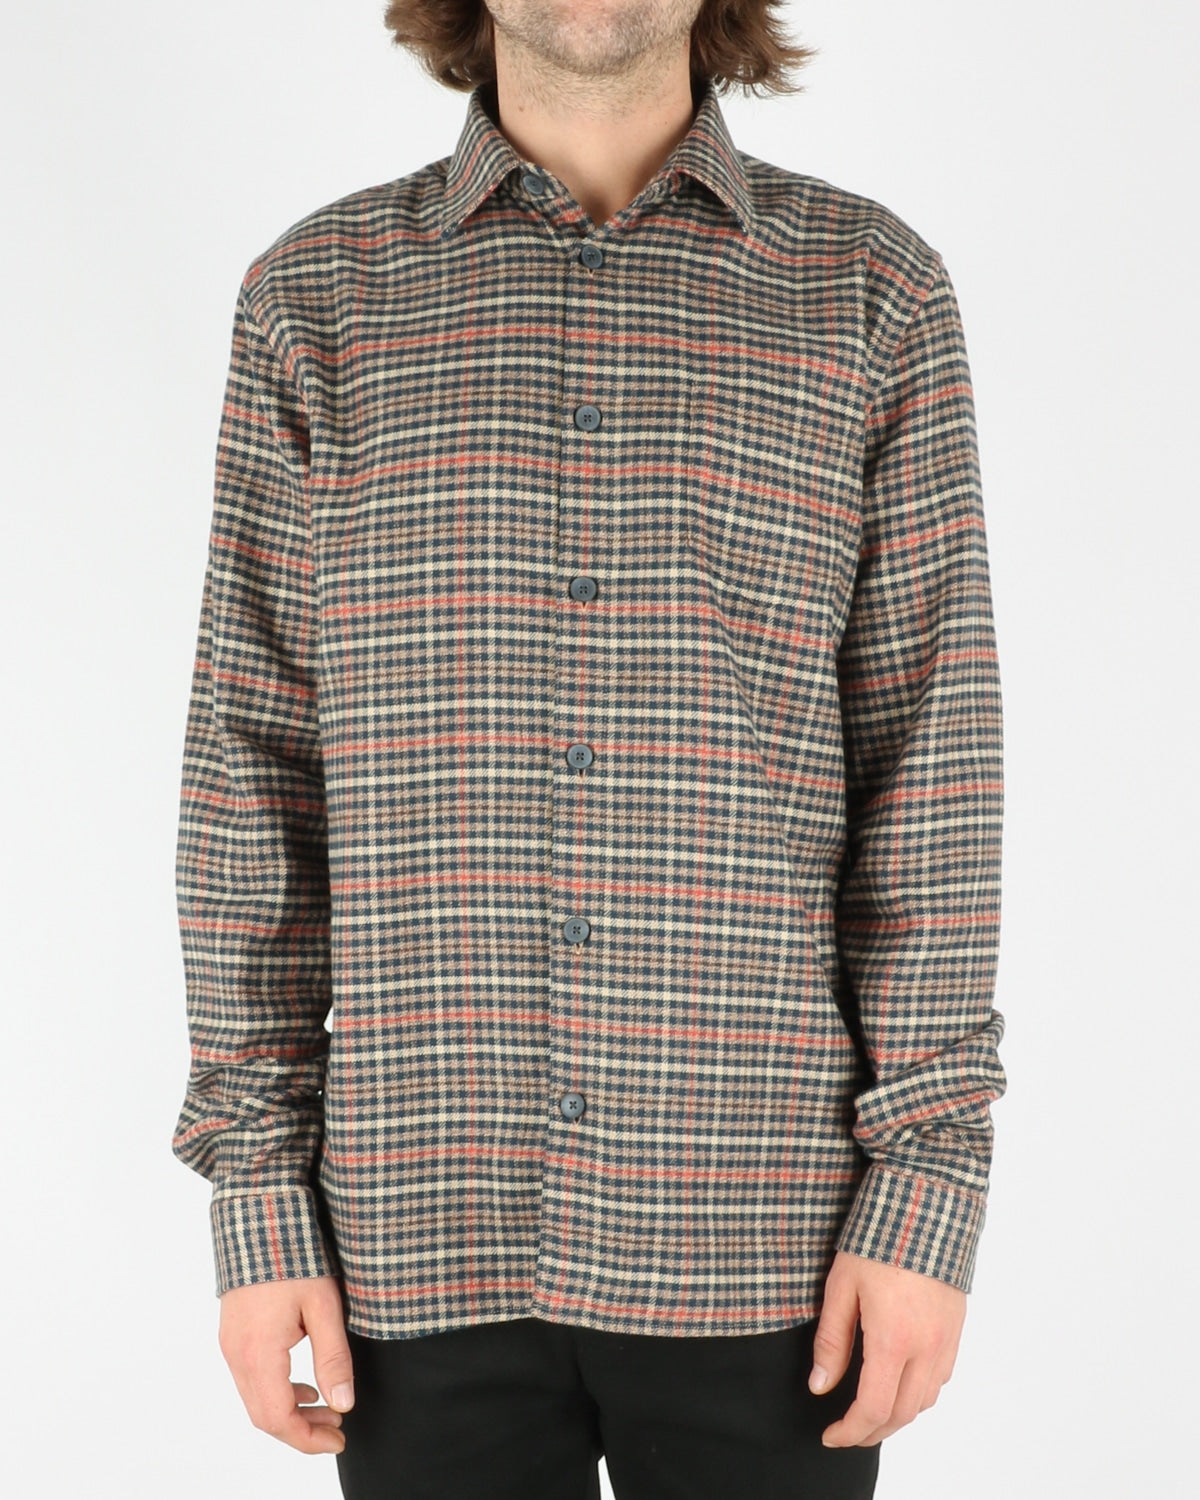 libertine libertine_miracle shirt_twill red check_1_5